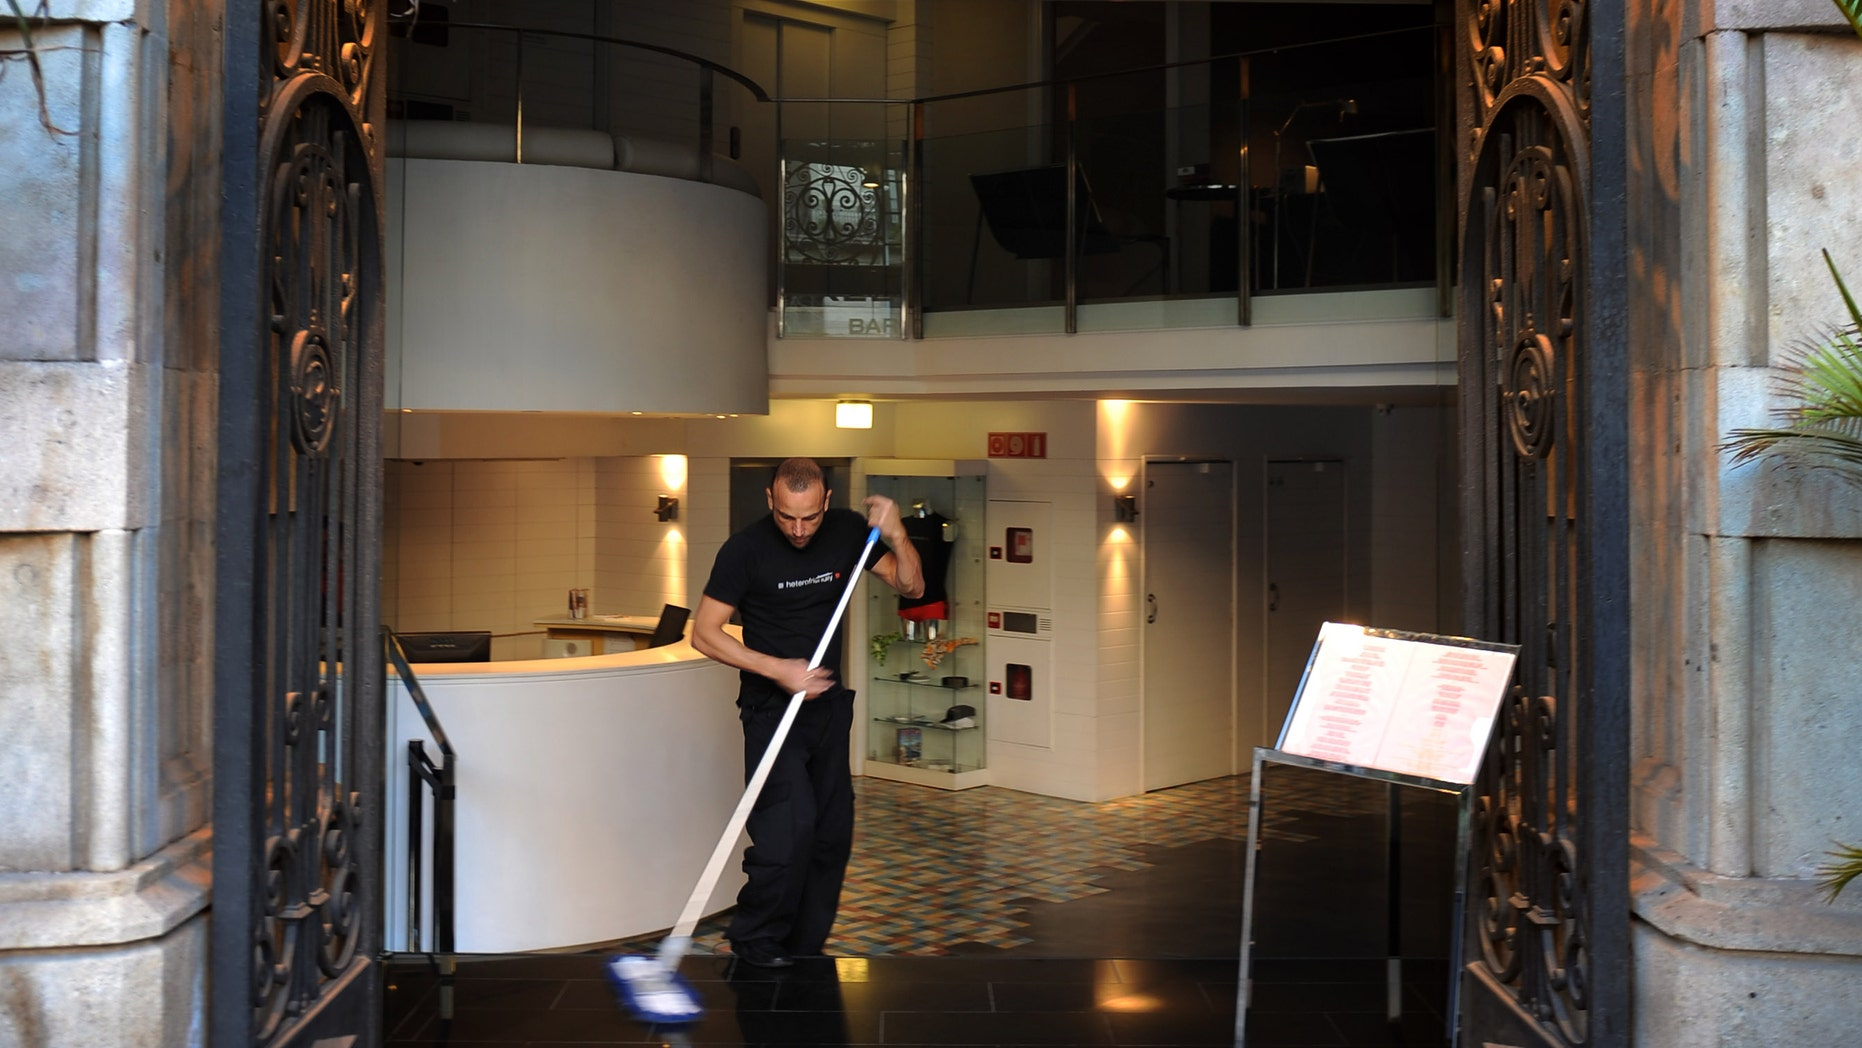 BARCELONA, SPAIN - MARCH 17:  A worker cleans the entrance of the Axel Hotel on March 17, 2009 in Barcelona, Spain. Axel Hotel is the first international hotel chain to cater specifically to homosexuals. Axel Hotels has also opened hotels in Berlin and Buenos Aires.  (Photo by Jasper Juinen/Getty Images)